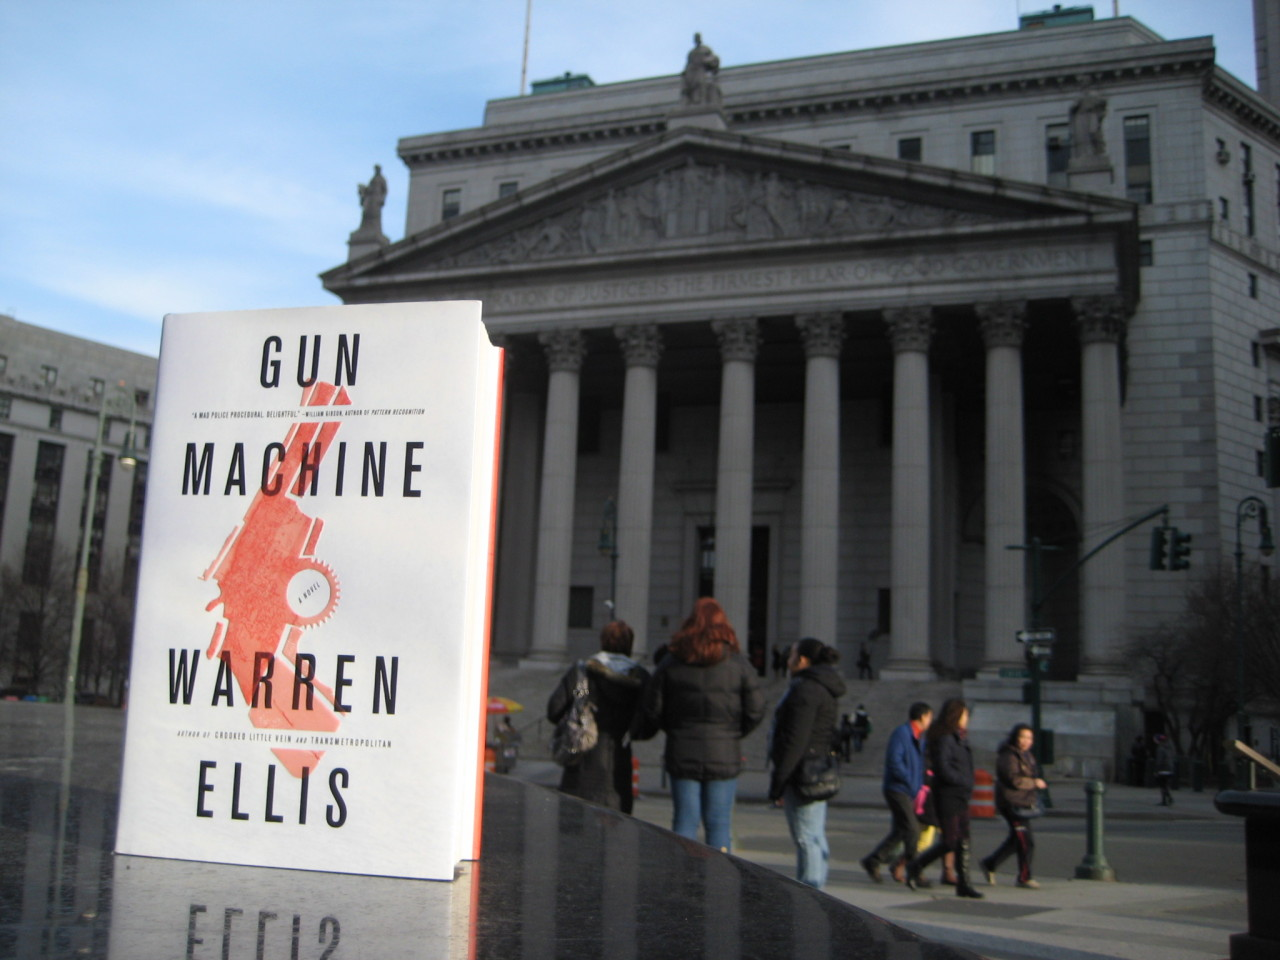 Drop #2: where in Manhattan is Gun Machine?Again, there are two ways to get your hands on a copy of Gun Machine before it becomes available to everyone else: Either go to the location above and pick it up or be the first to email thisisgunmachine@gmail.com with the book's location. I'm afraid we're only accepting entries from the US and UK. EDIT: We have a winner! The book is sitting in front of the New York county courthouse in downtown Manhattan.